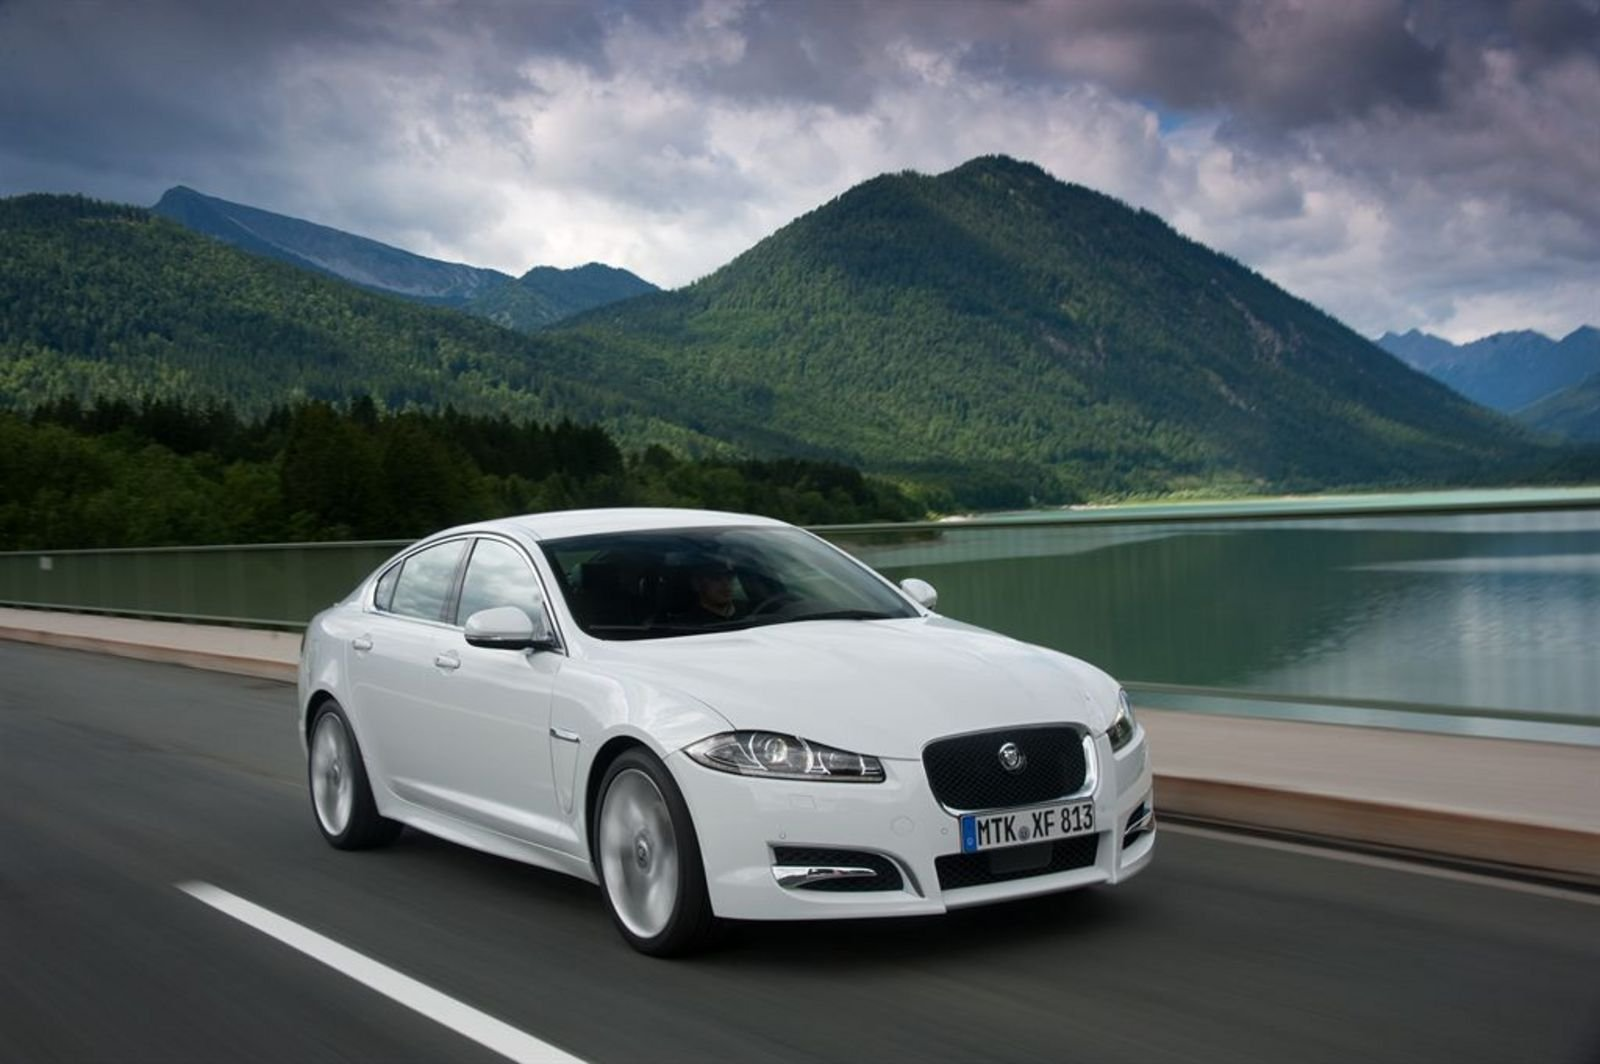 2012 jaguar xf 2 2 diesel review top speed. Black Bedroom Furniture Sets. Home Design Ideas